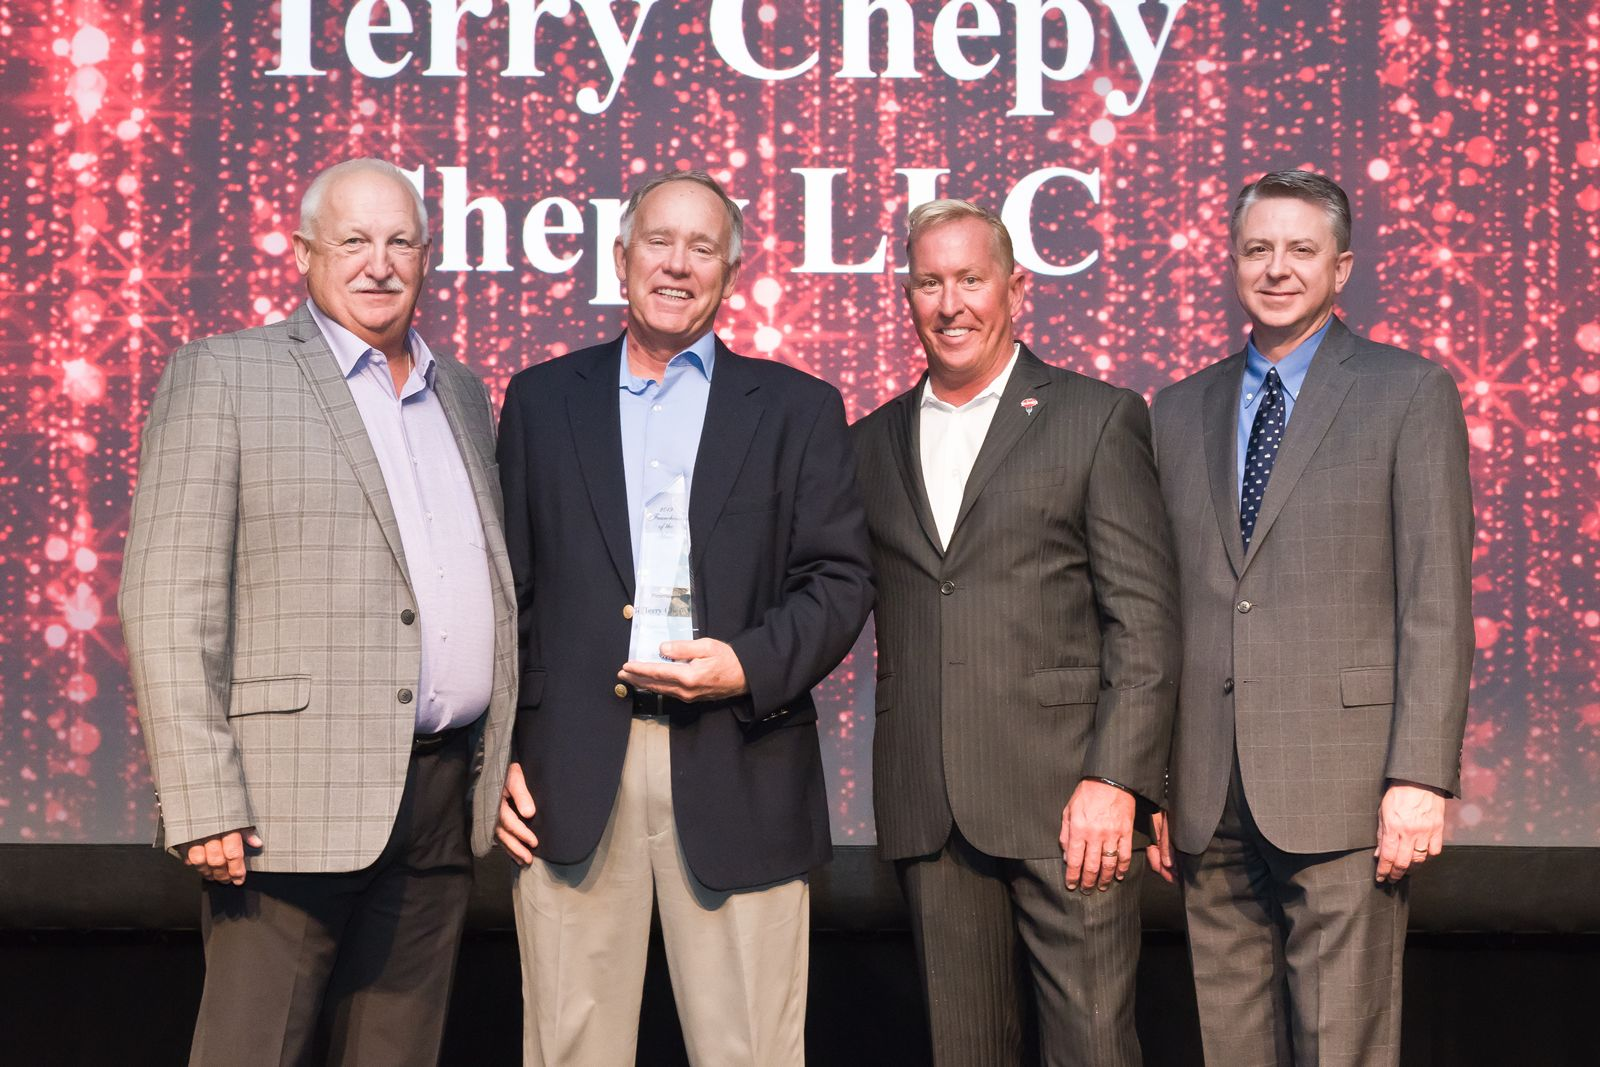 Doug Bostick, Senior VP of Operations & Franchise Development; Terry Chepy, Franchisee of the Year; Carl Howard, Fazoli's CEO; Rodney Lee, Fazoli's CFO.